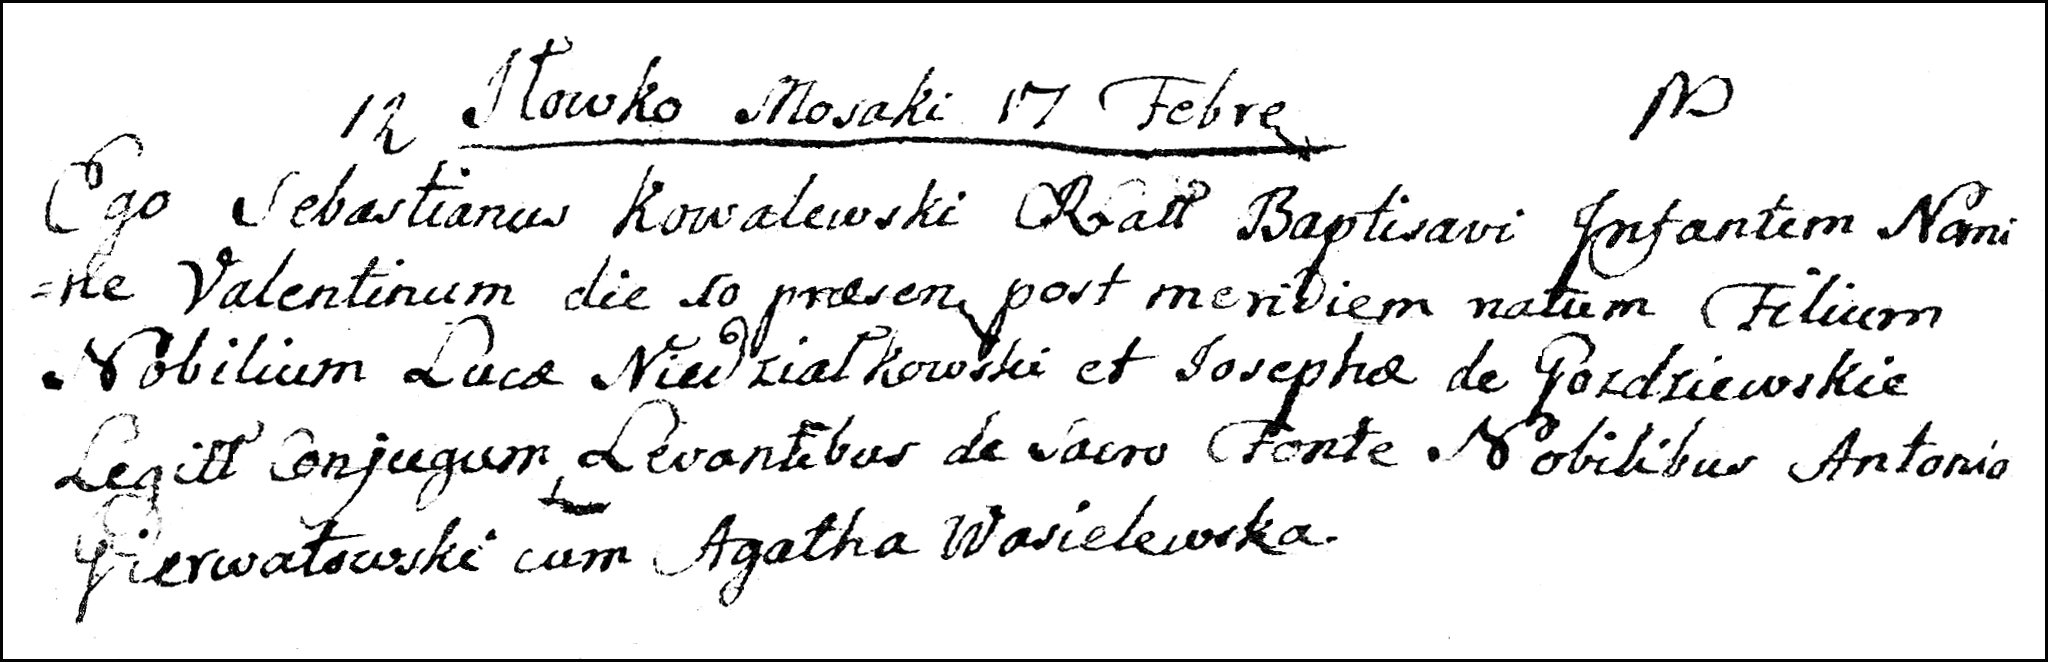 The Birth and Baptismal Record of Walenty Niedzialkowski - 1782